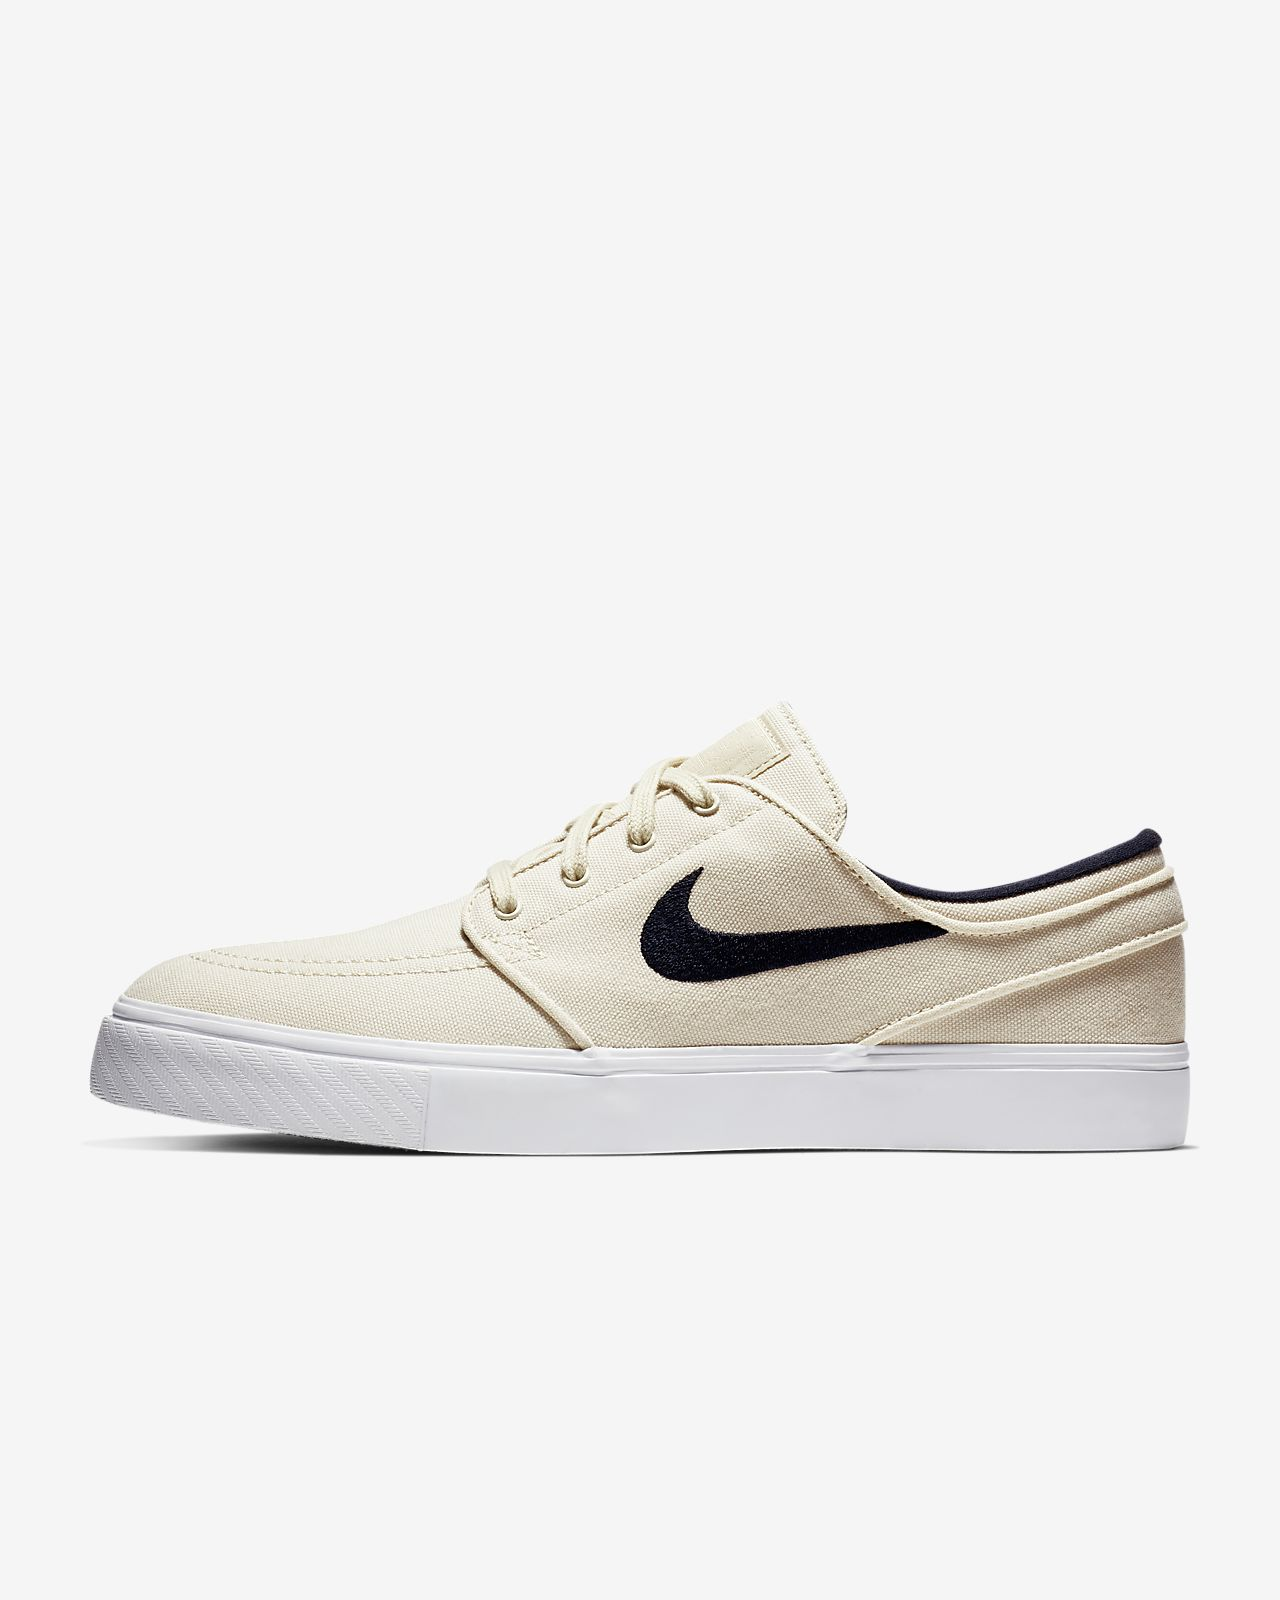 64888fddfaec0 Nike SB Zoom Stefan Janoski Canvas Men's Skate Shoe